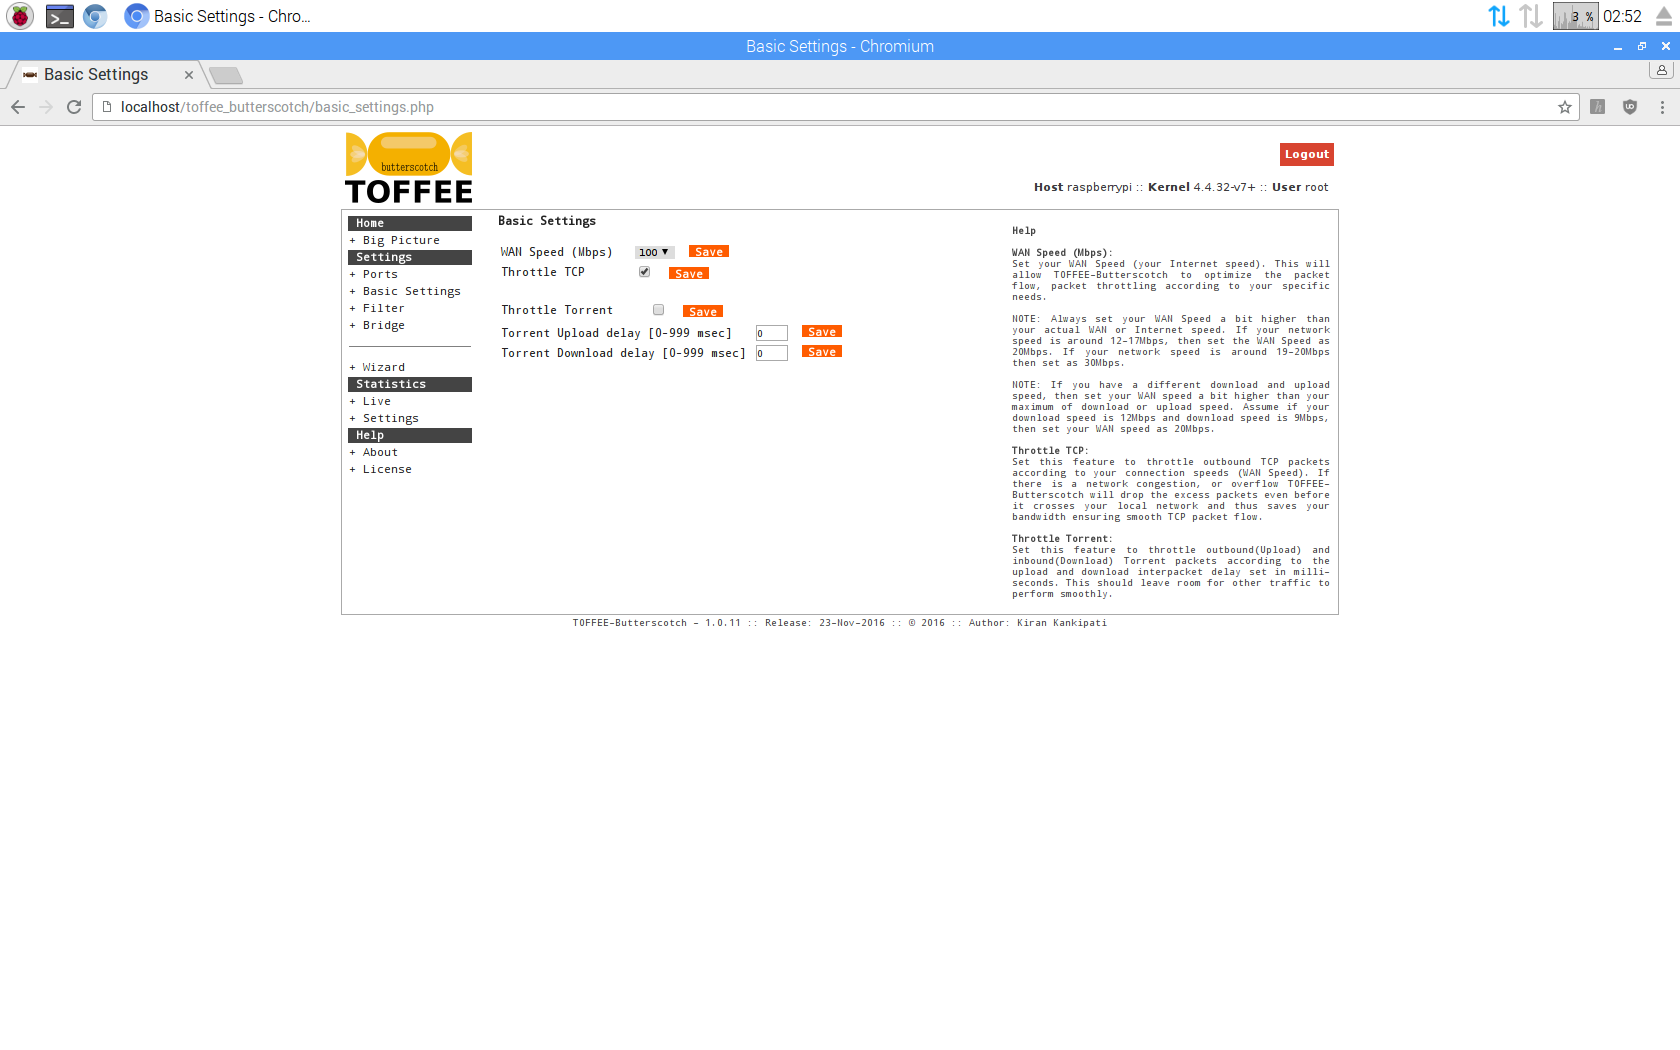 TOFFEE_Butterscotch Throttle TCP [CDN]